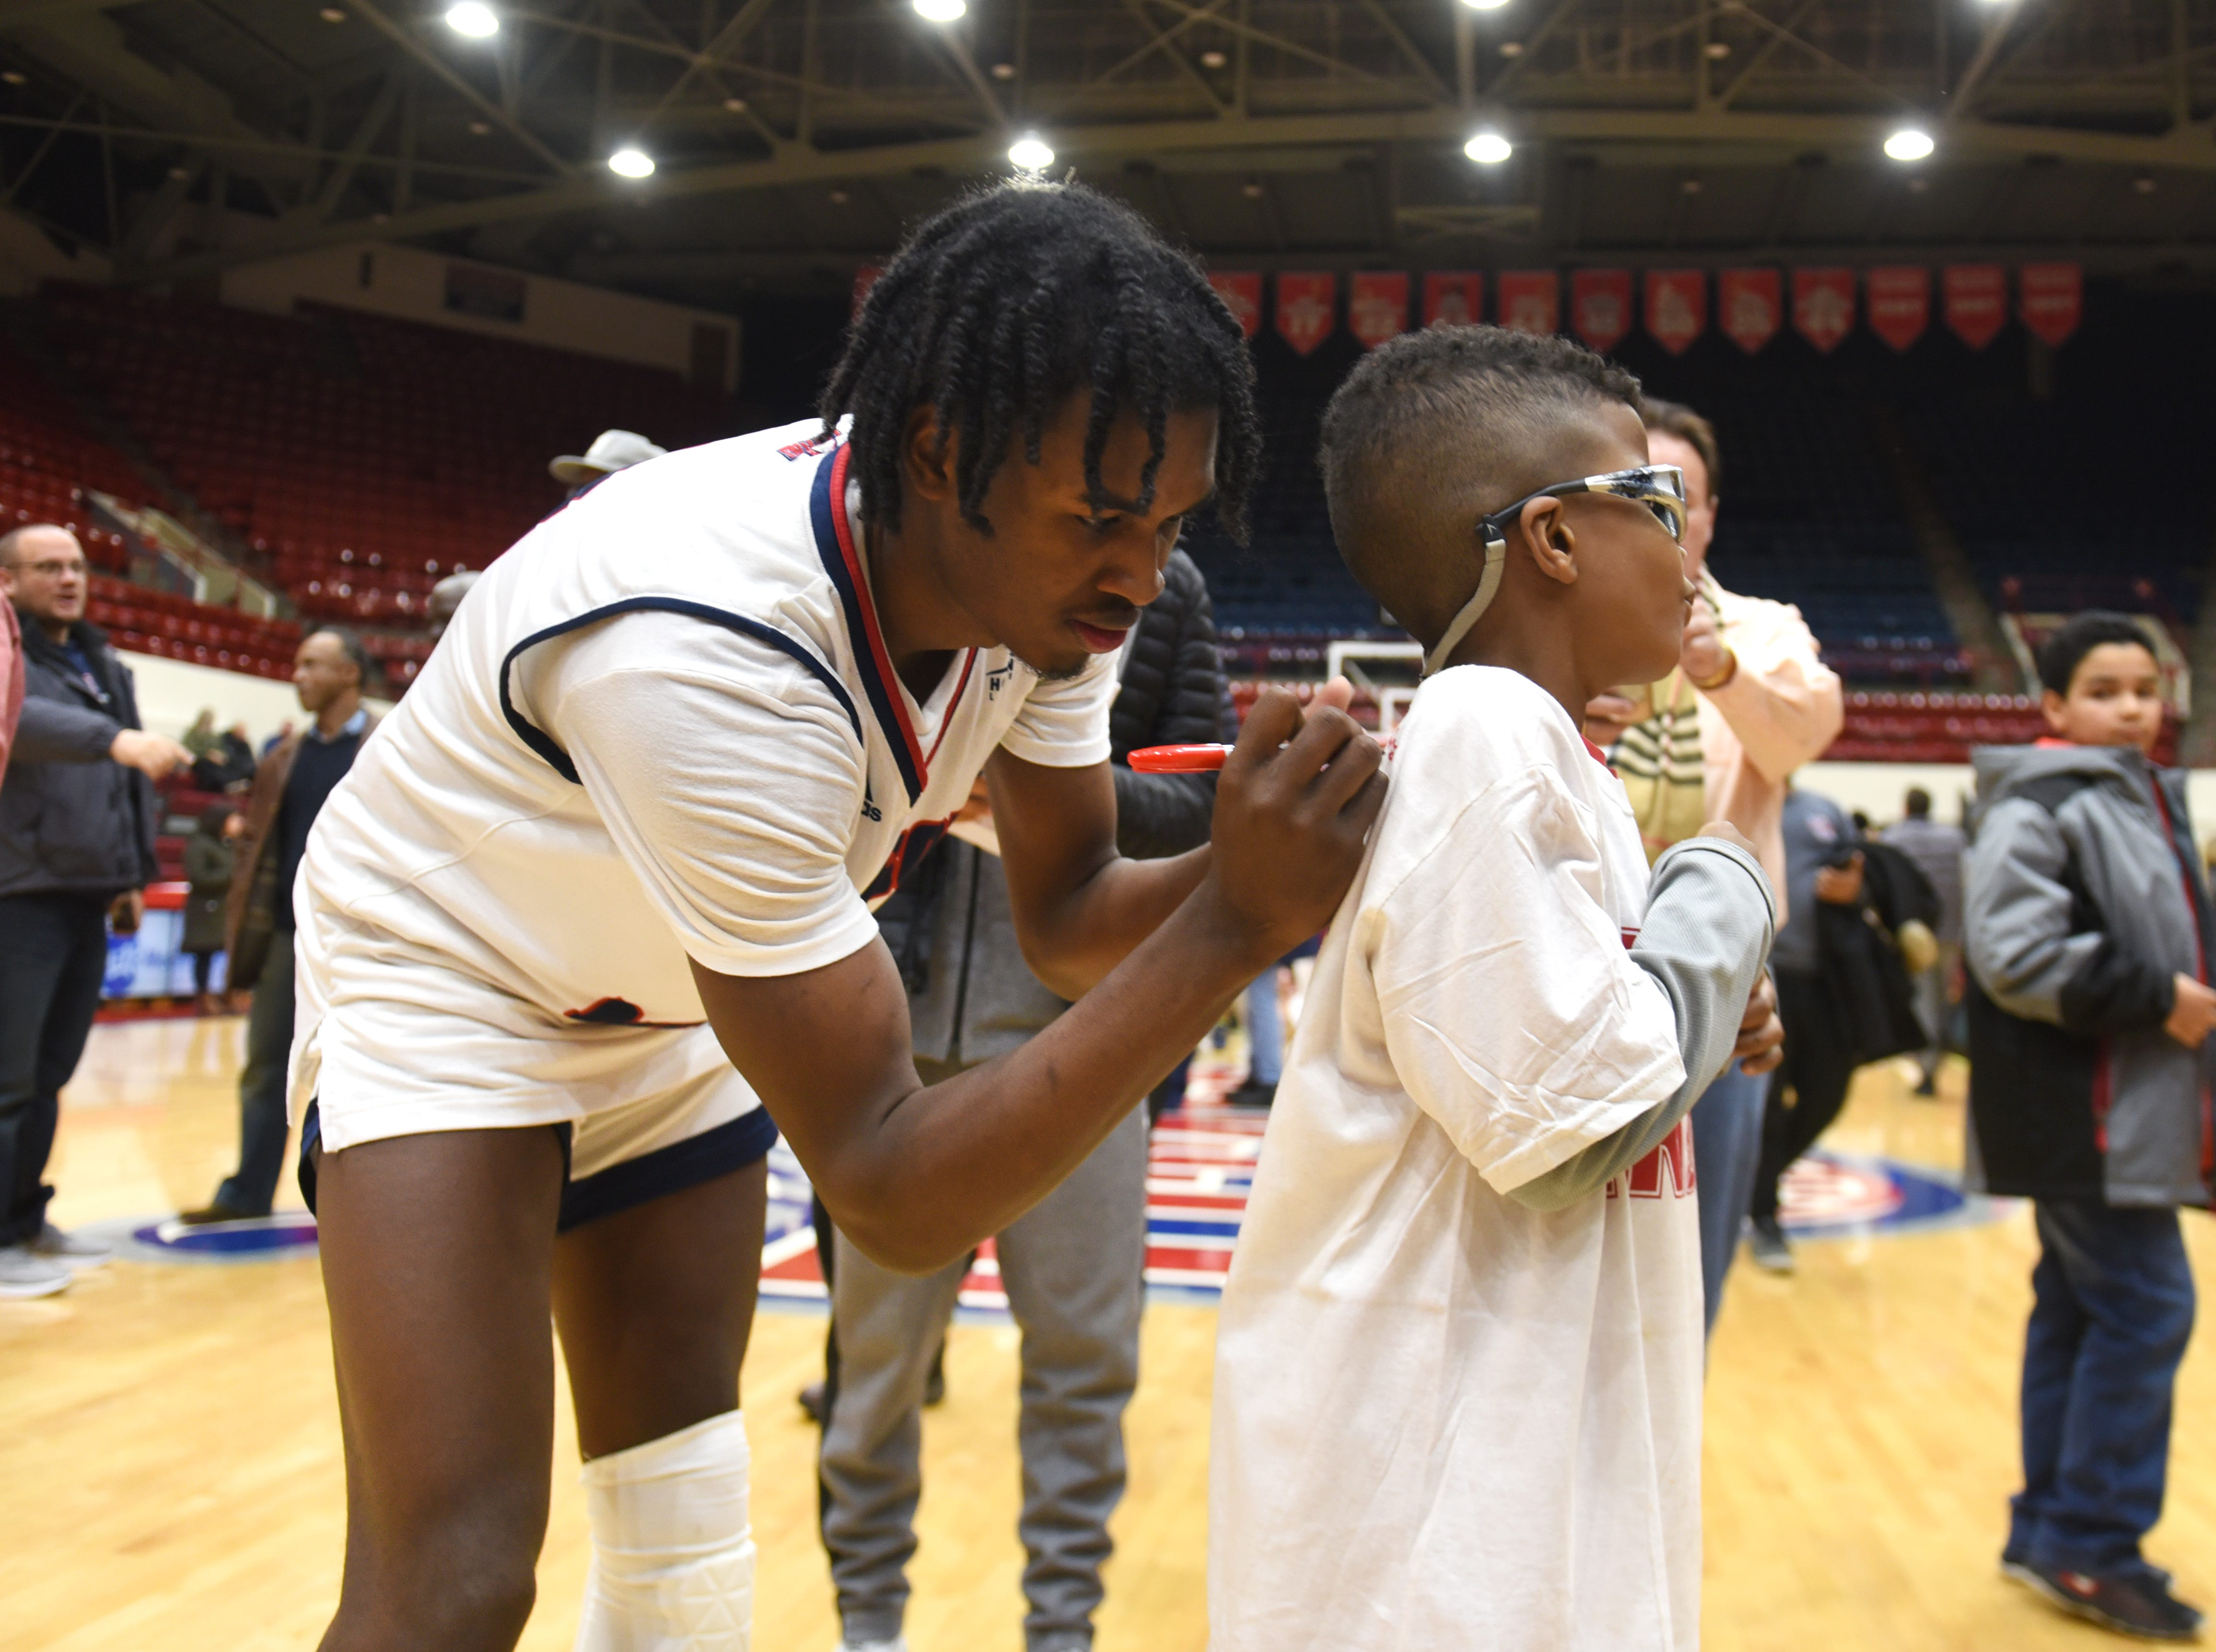 University of Detroit Mercy player Antoine Davis sign an autograph on the shirt of Joshua Grady after a victory over Milwaukee. Davis scored 32 points.